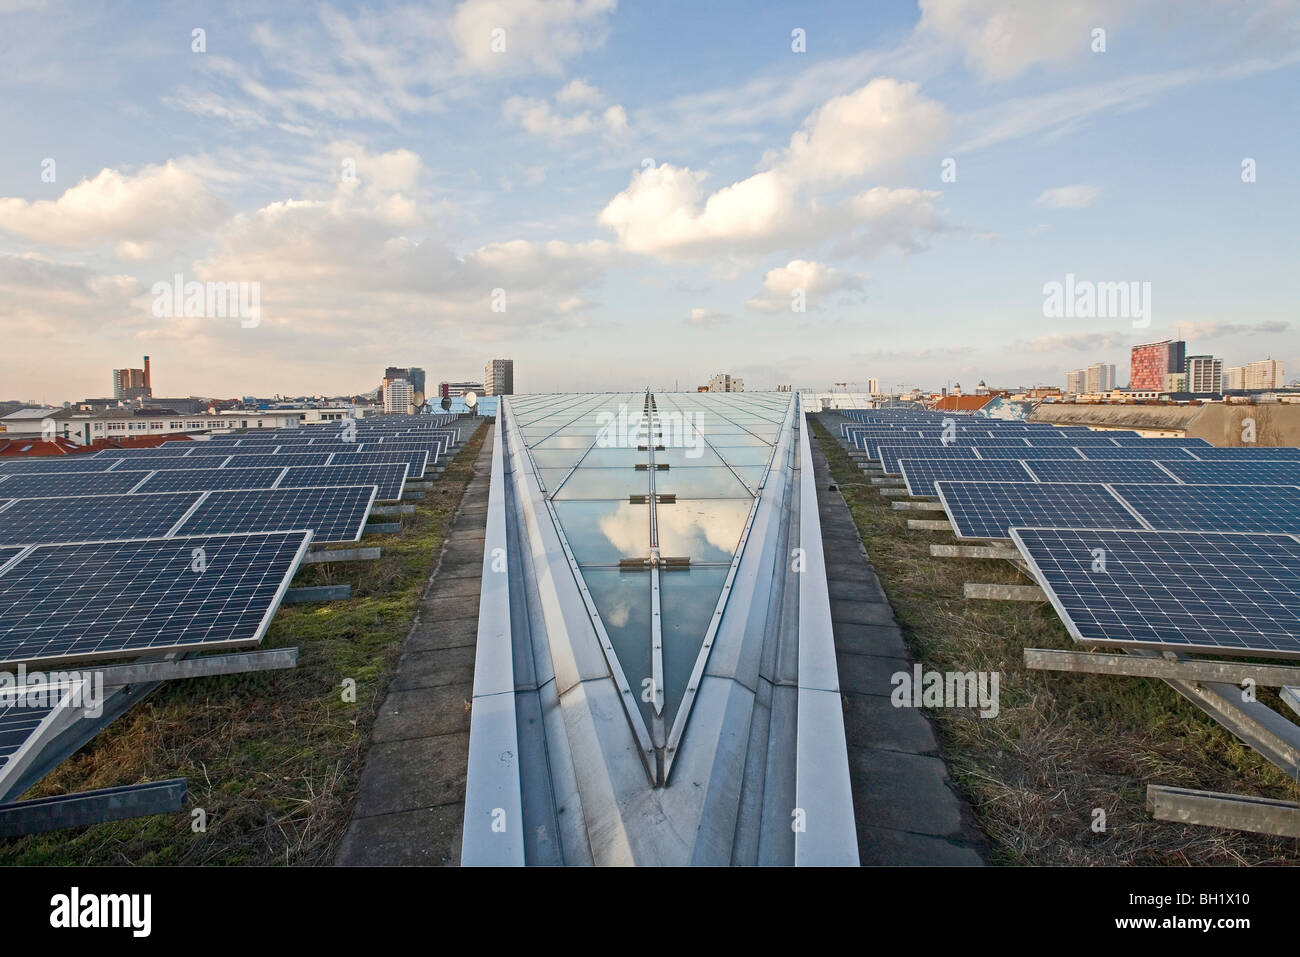 solar panels on the grass roof of the Willy-Brandt Haus headquarters of the SPD Social Democratic party Berlin, - Stock Image